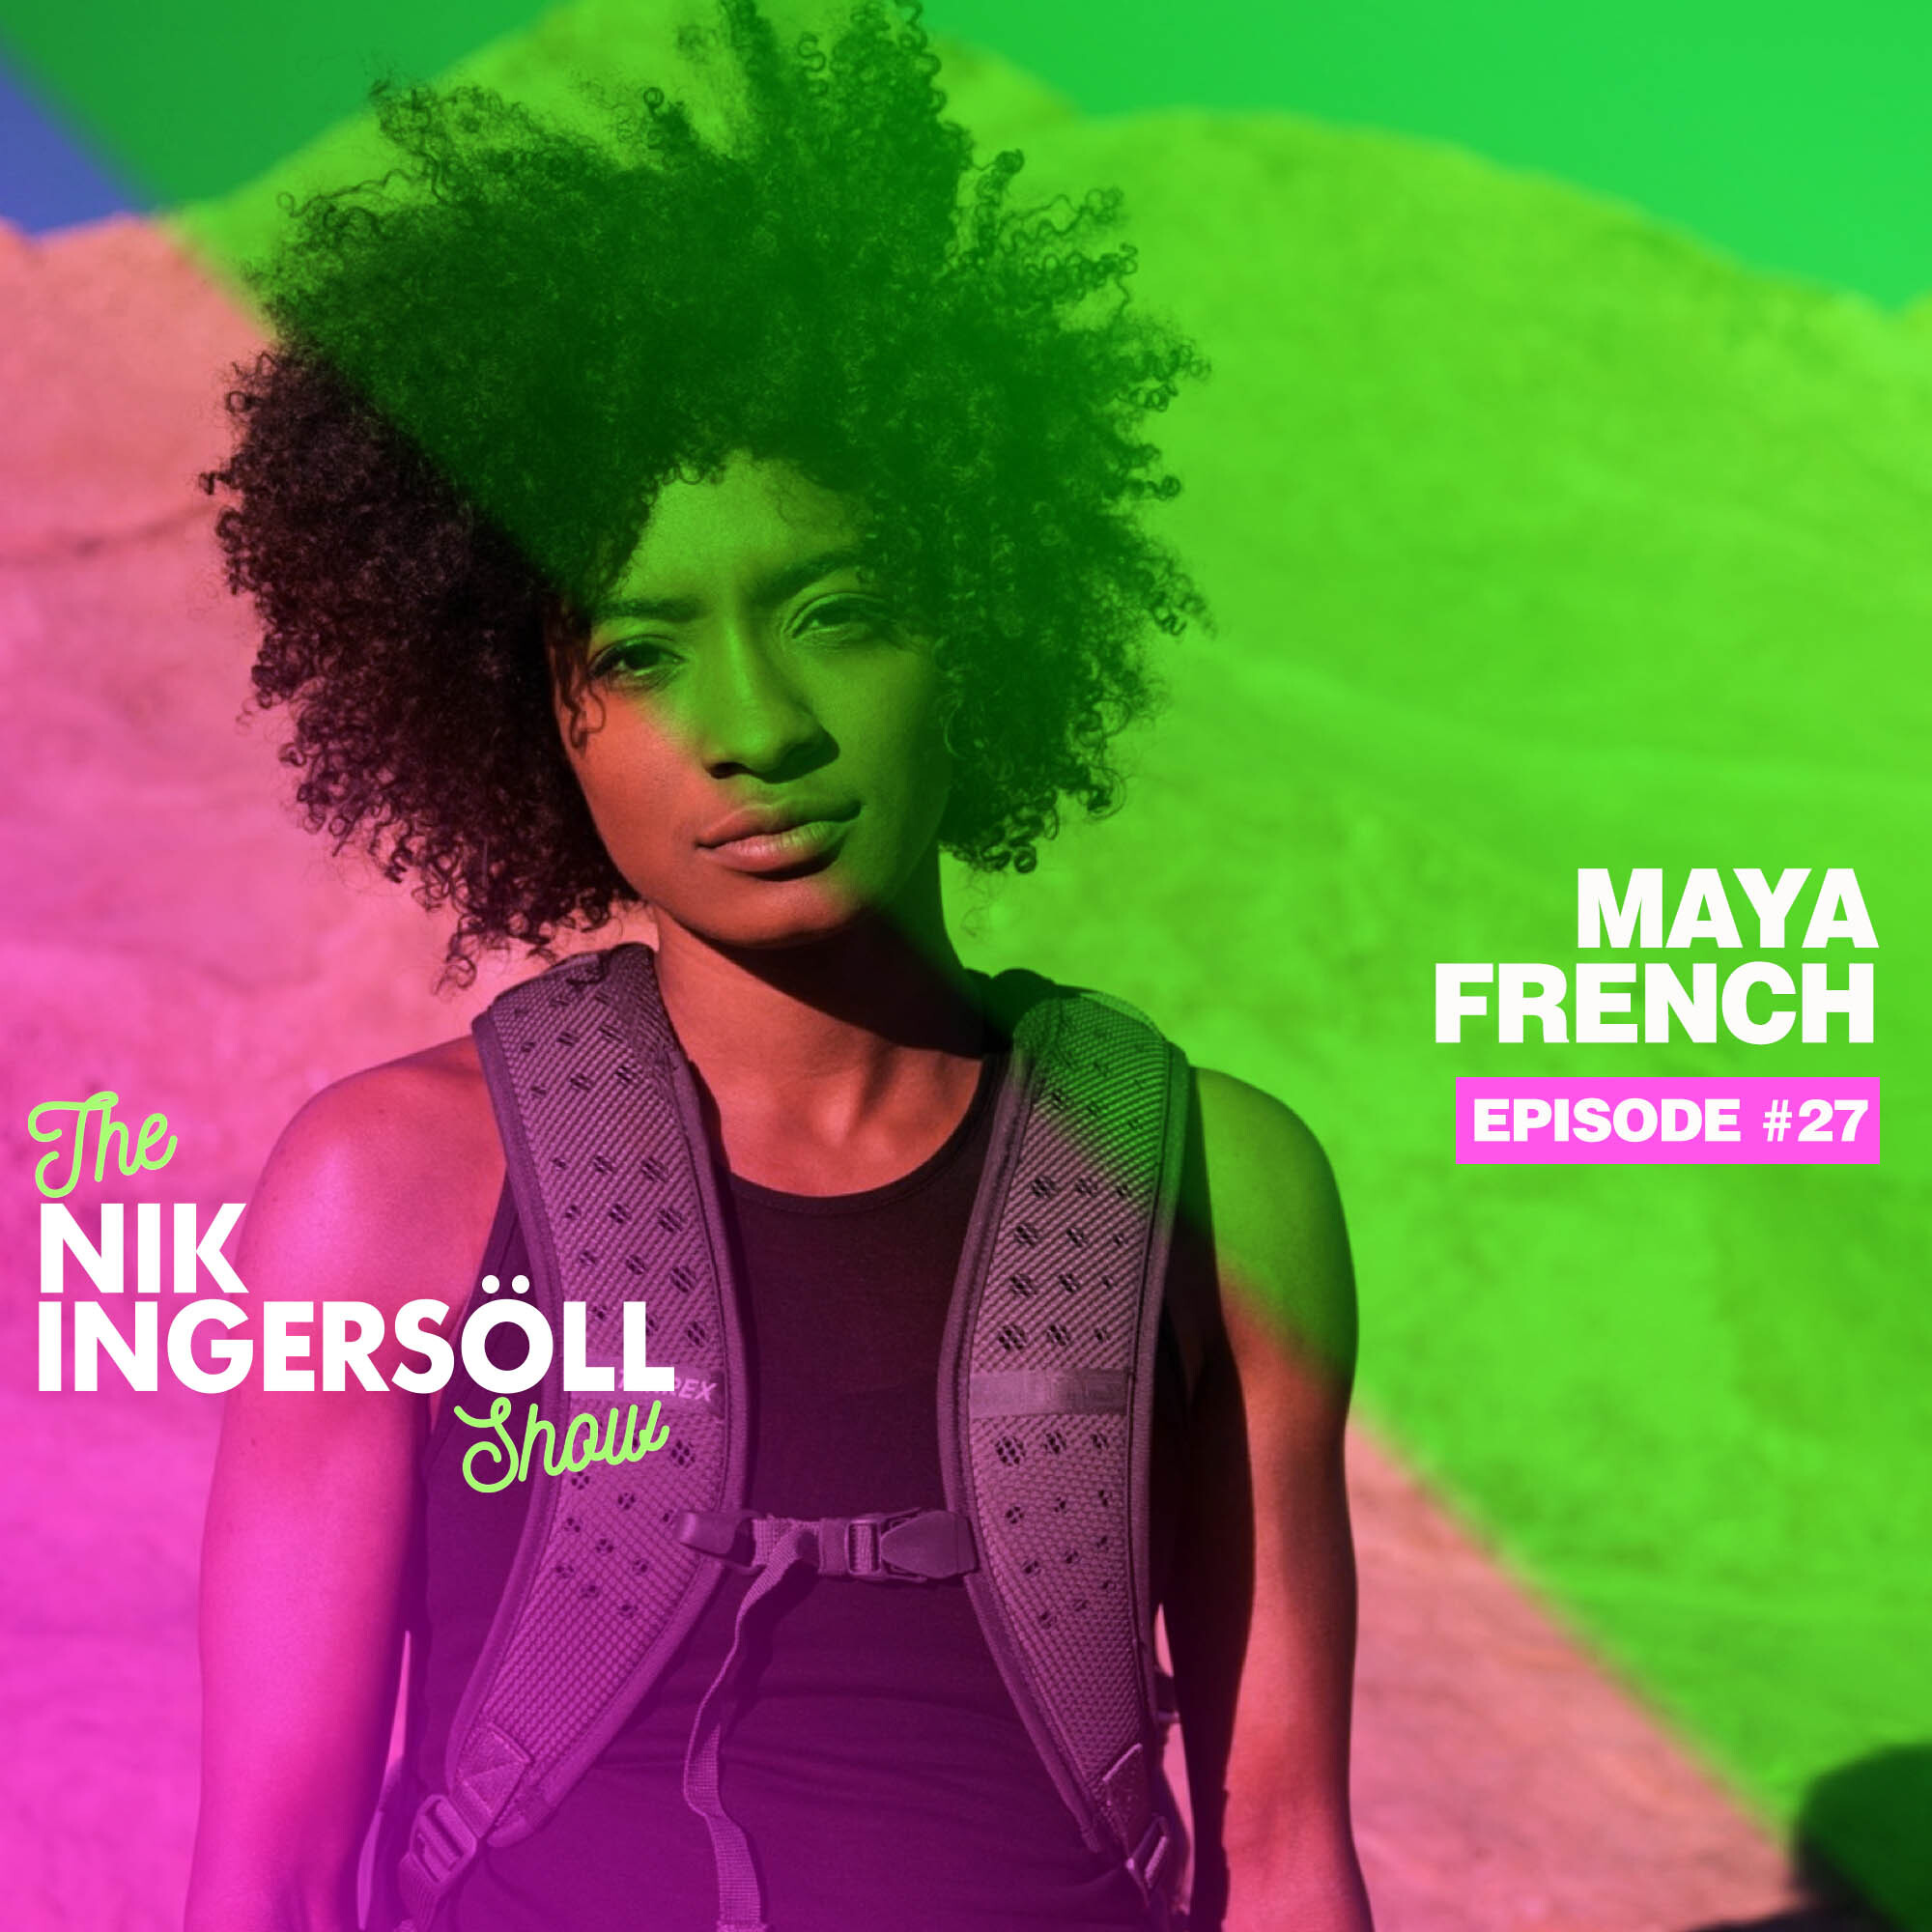 #27: Maya French – Drink Koia – (Podcast) The Nik Ingersoll Show